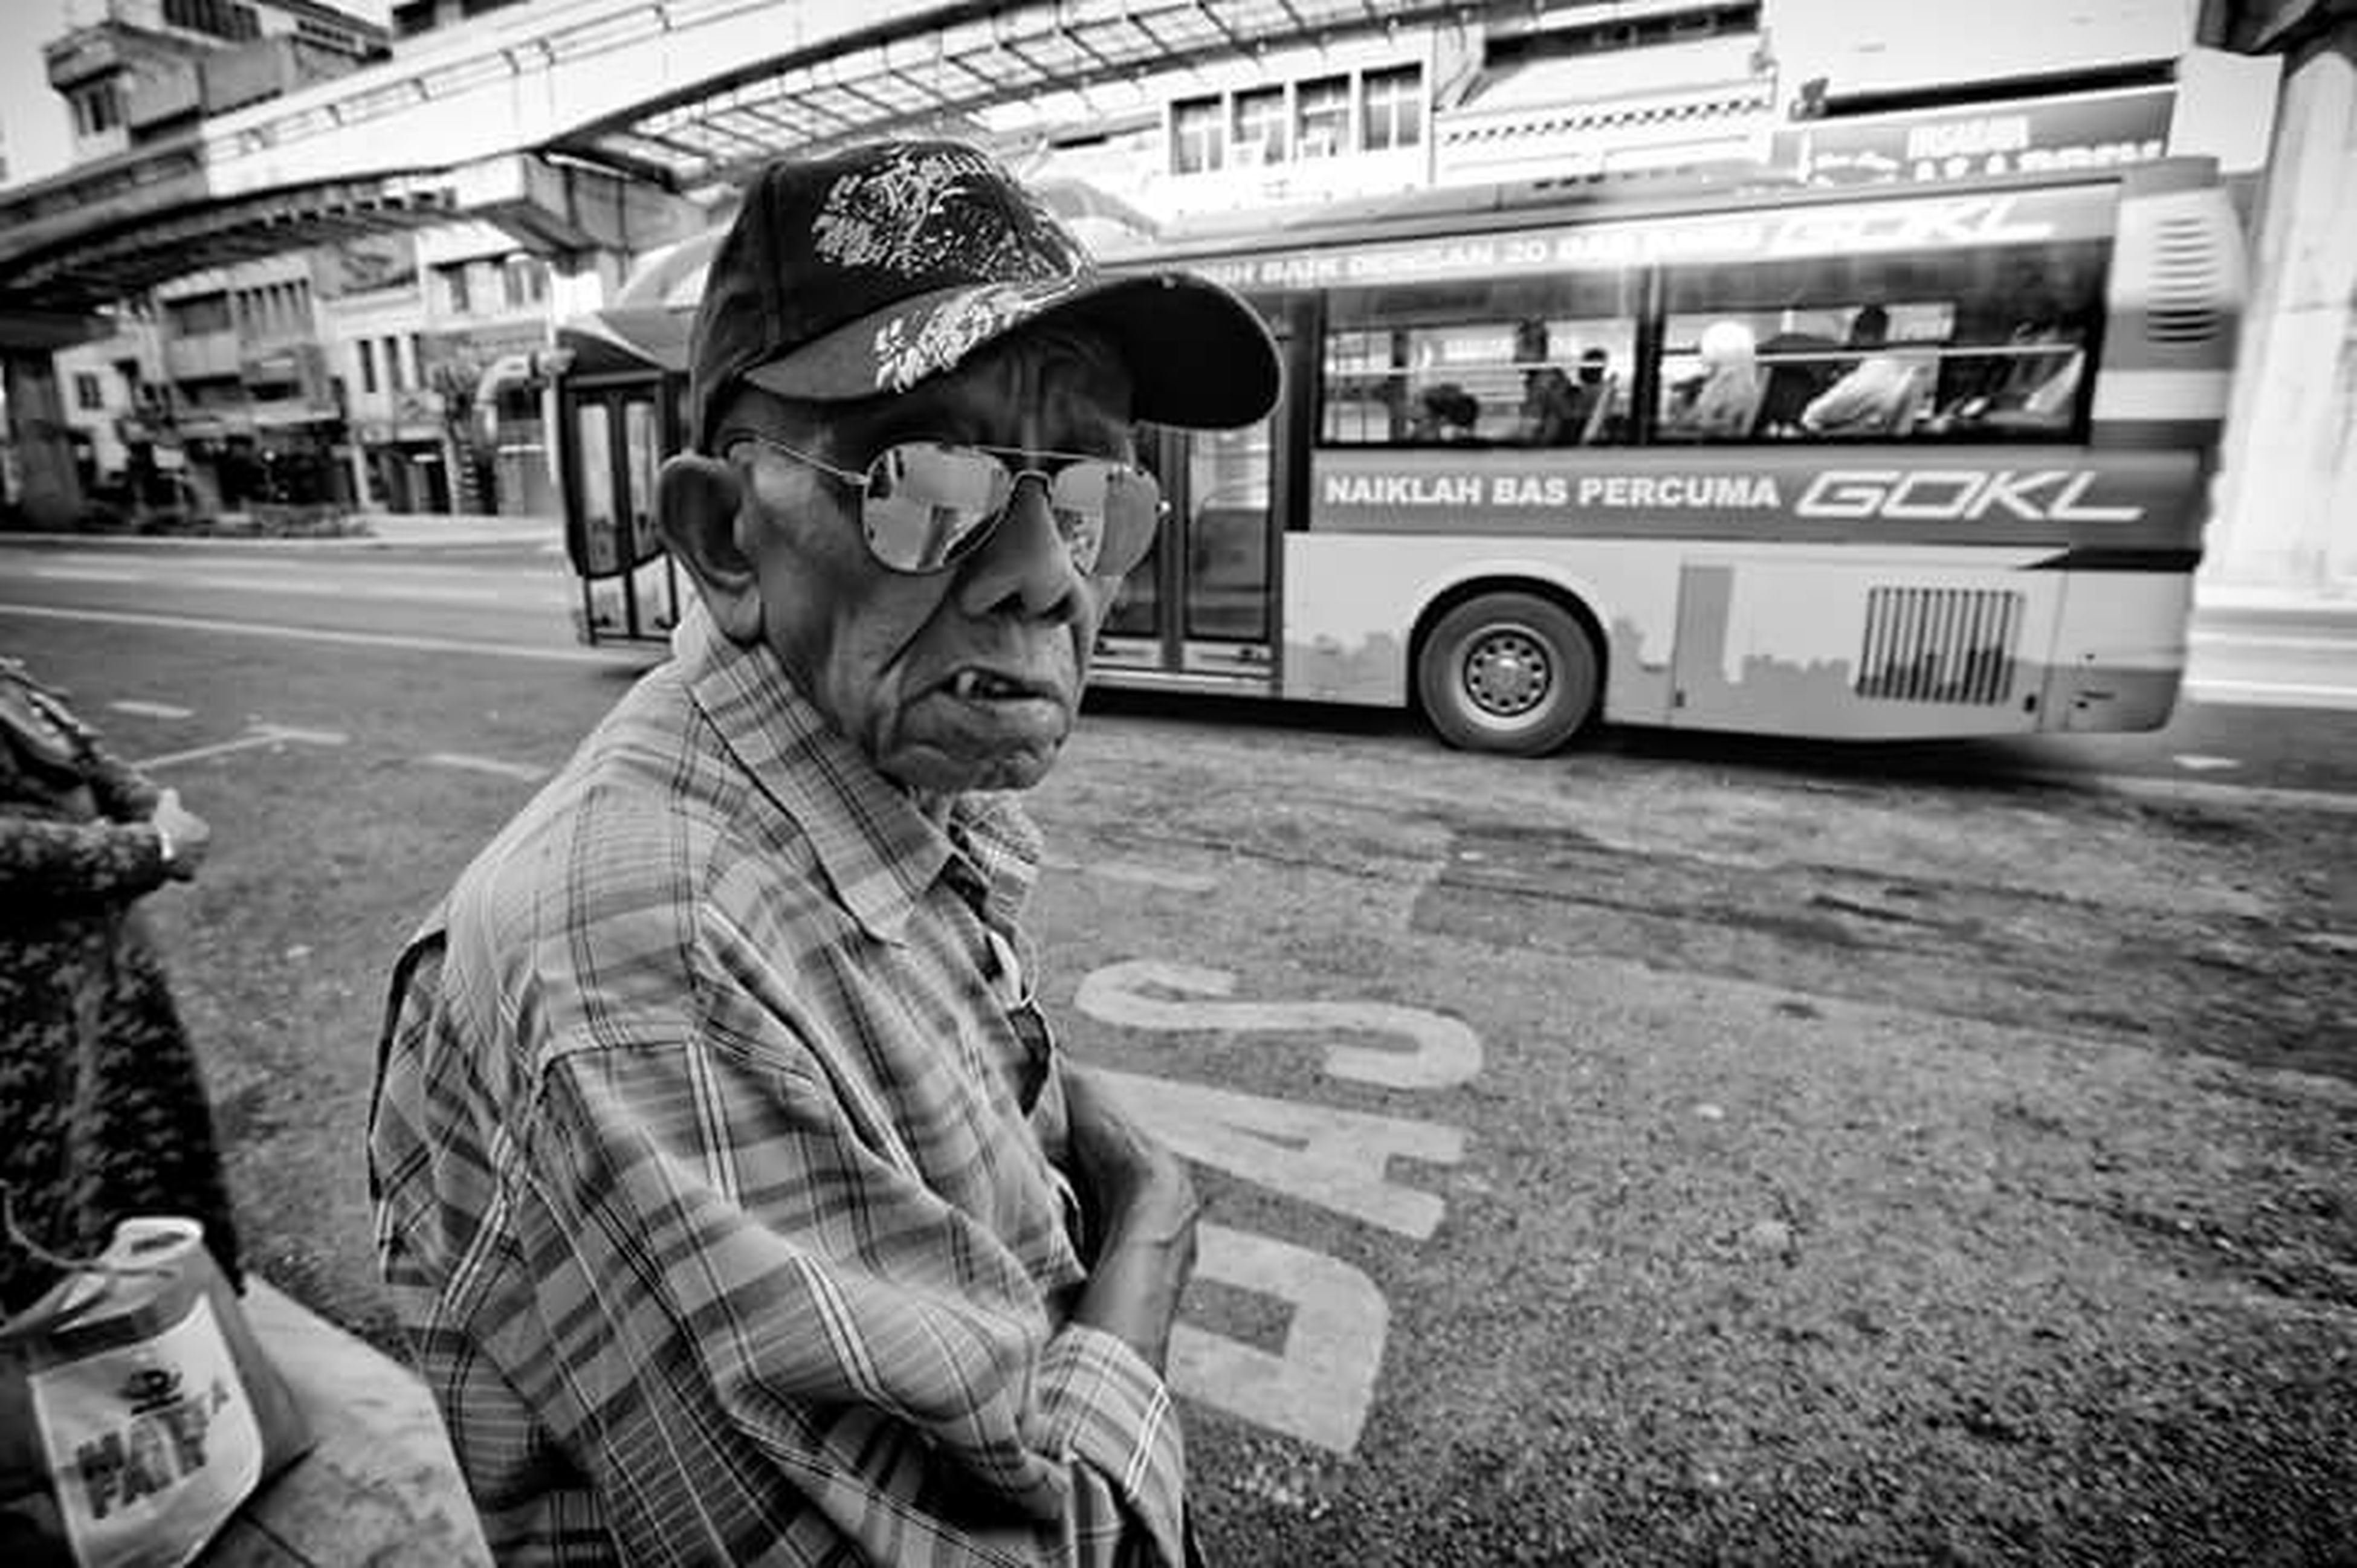 transportation, land vehicle, mode of transport, street, car, road, casual clothing, lifestyles, travel, leisure activity, city, public transportation, sleeping, full length, city life, holding, person, homelessness, outdoors, day, focus on foreground